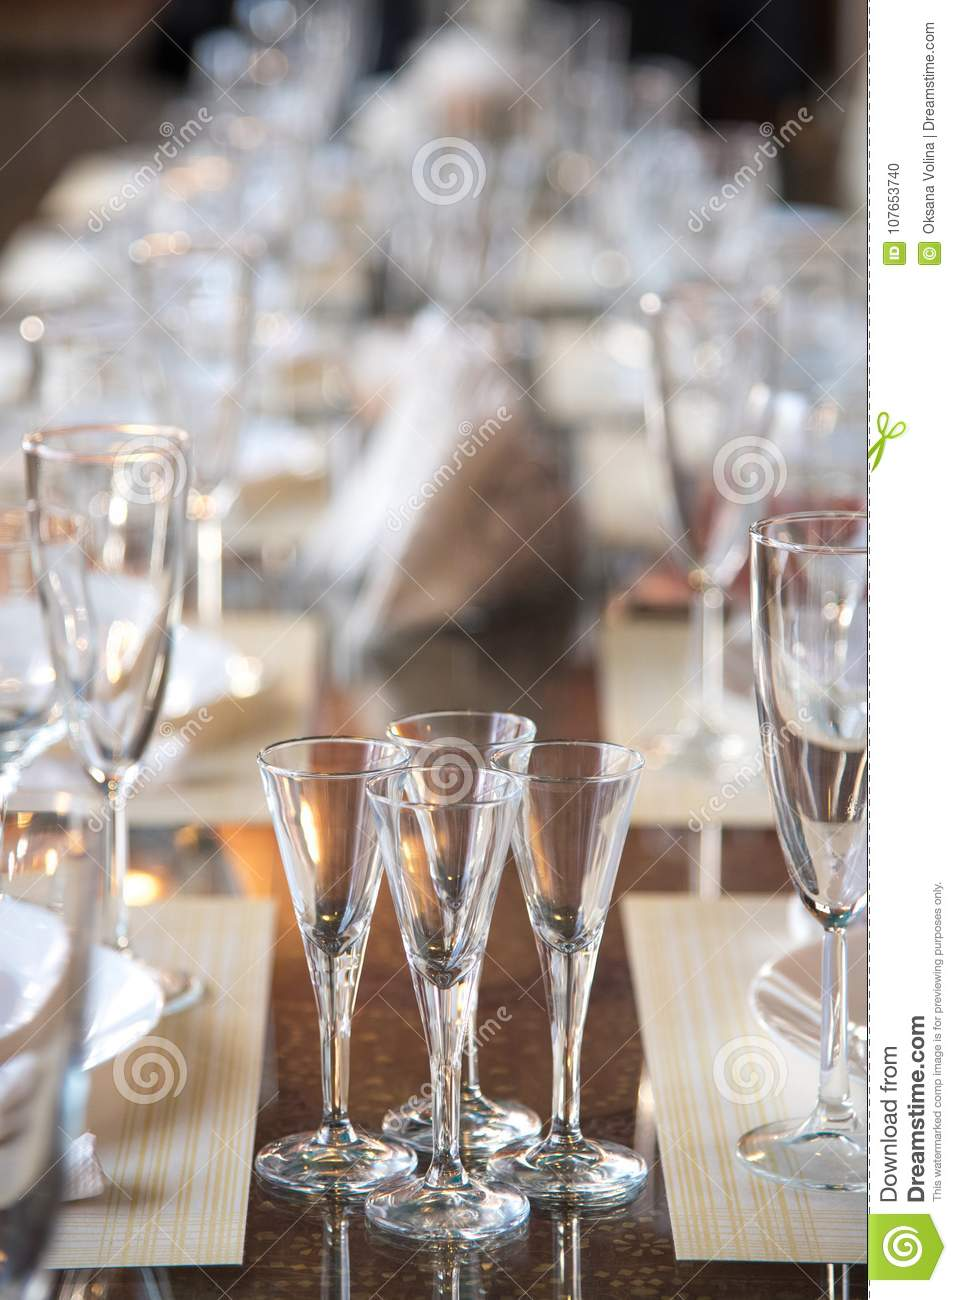 Table Setting In The Restaurant  Including Glasses For